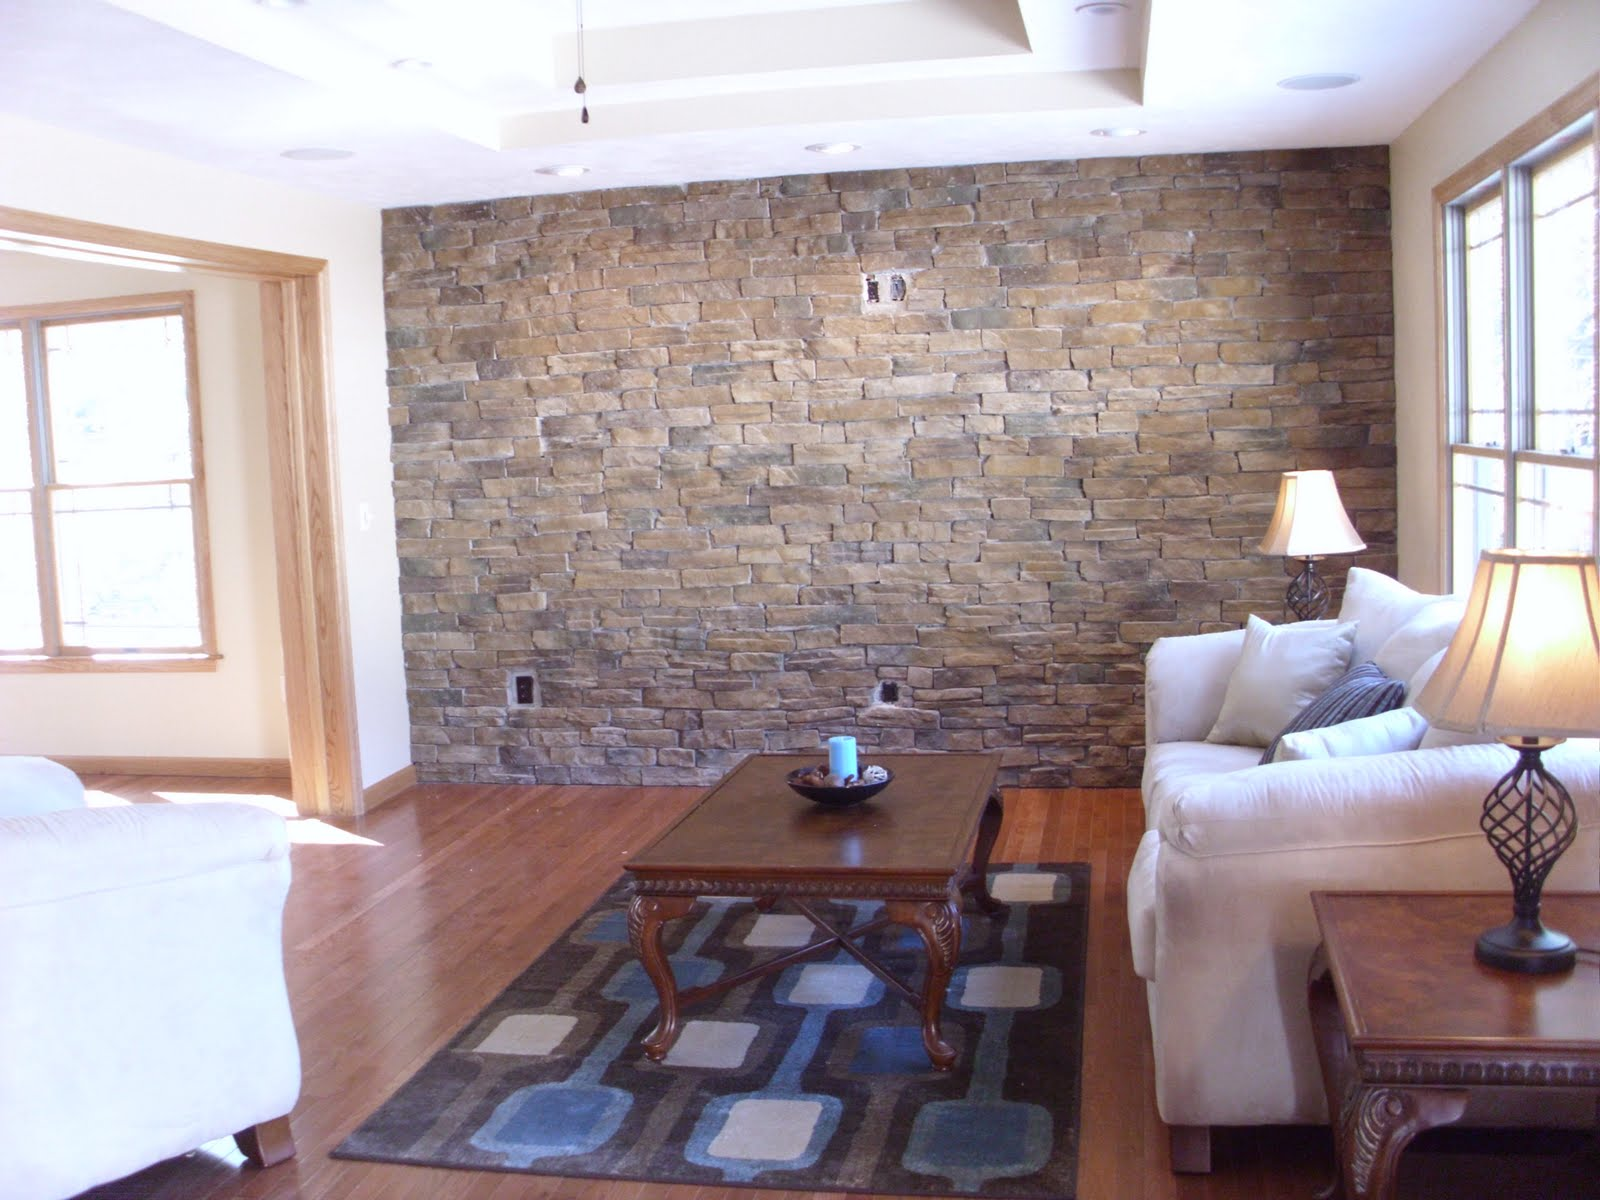 Crystal 39 s cottage open house after the staging - Living room wall ideas ...